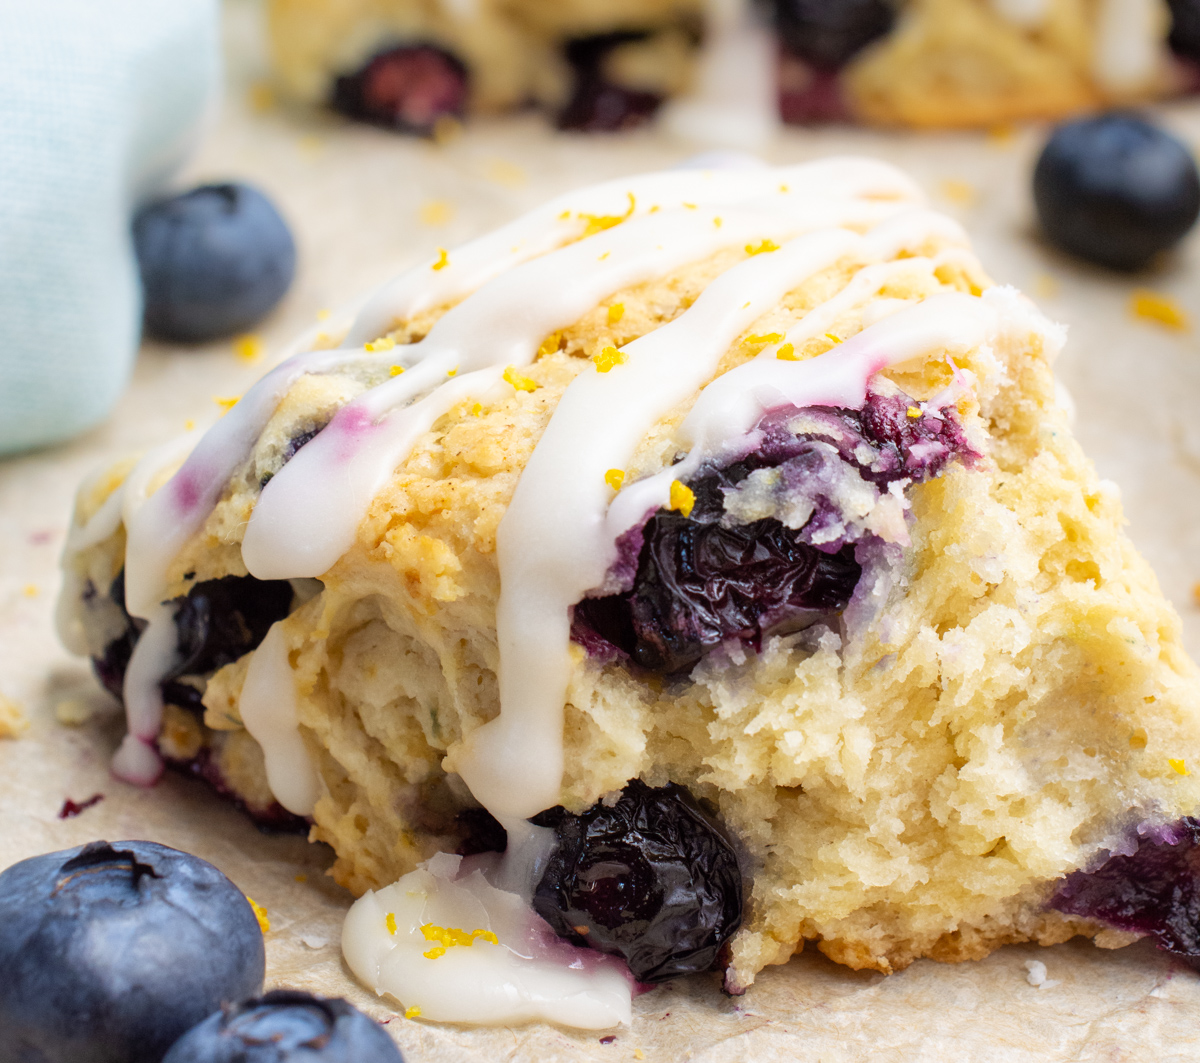 A blueberry scone broken into to show the inside.